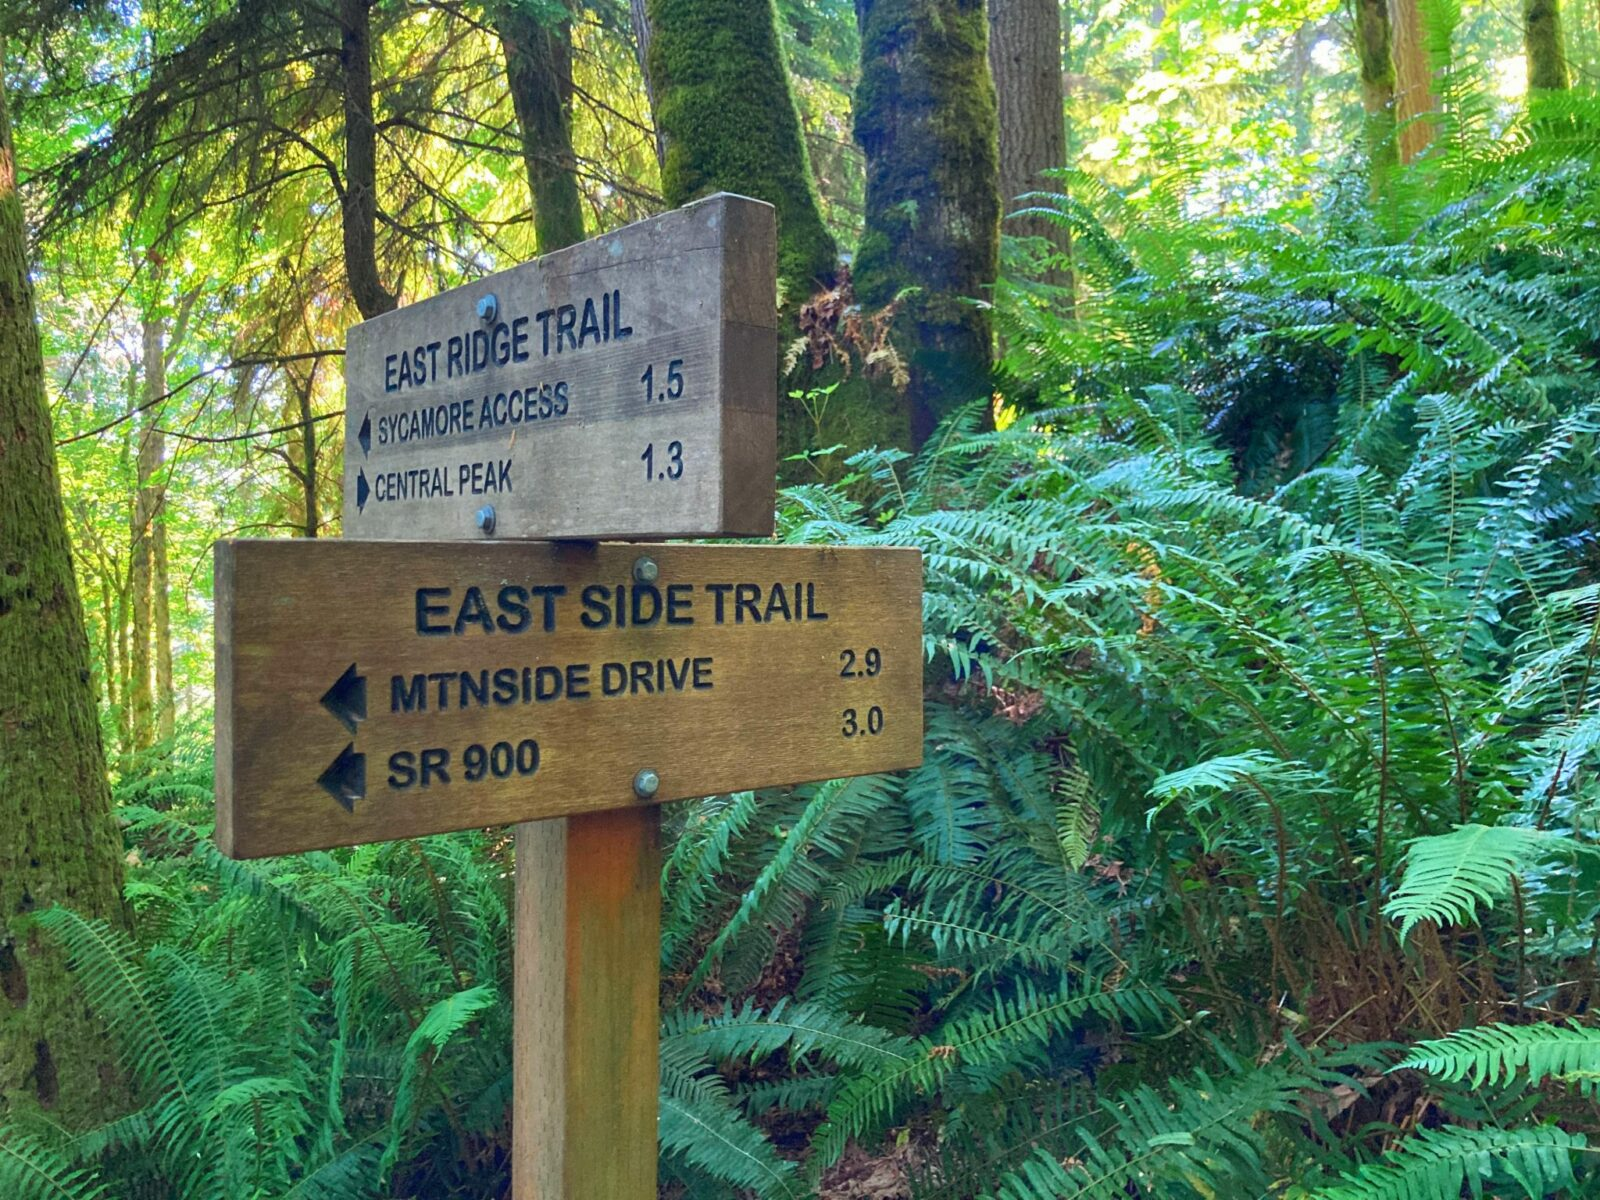 Two wooden direction trail signs on the East Ridge Trail in a forest full of ferns. One sign points to the Sycamore Access Trail and Central Peak, the other points to Mountainside Drive and SR 900